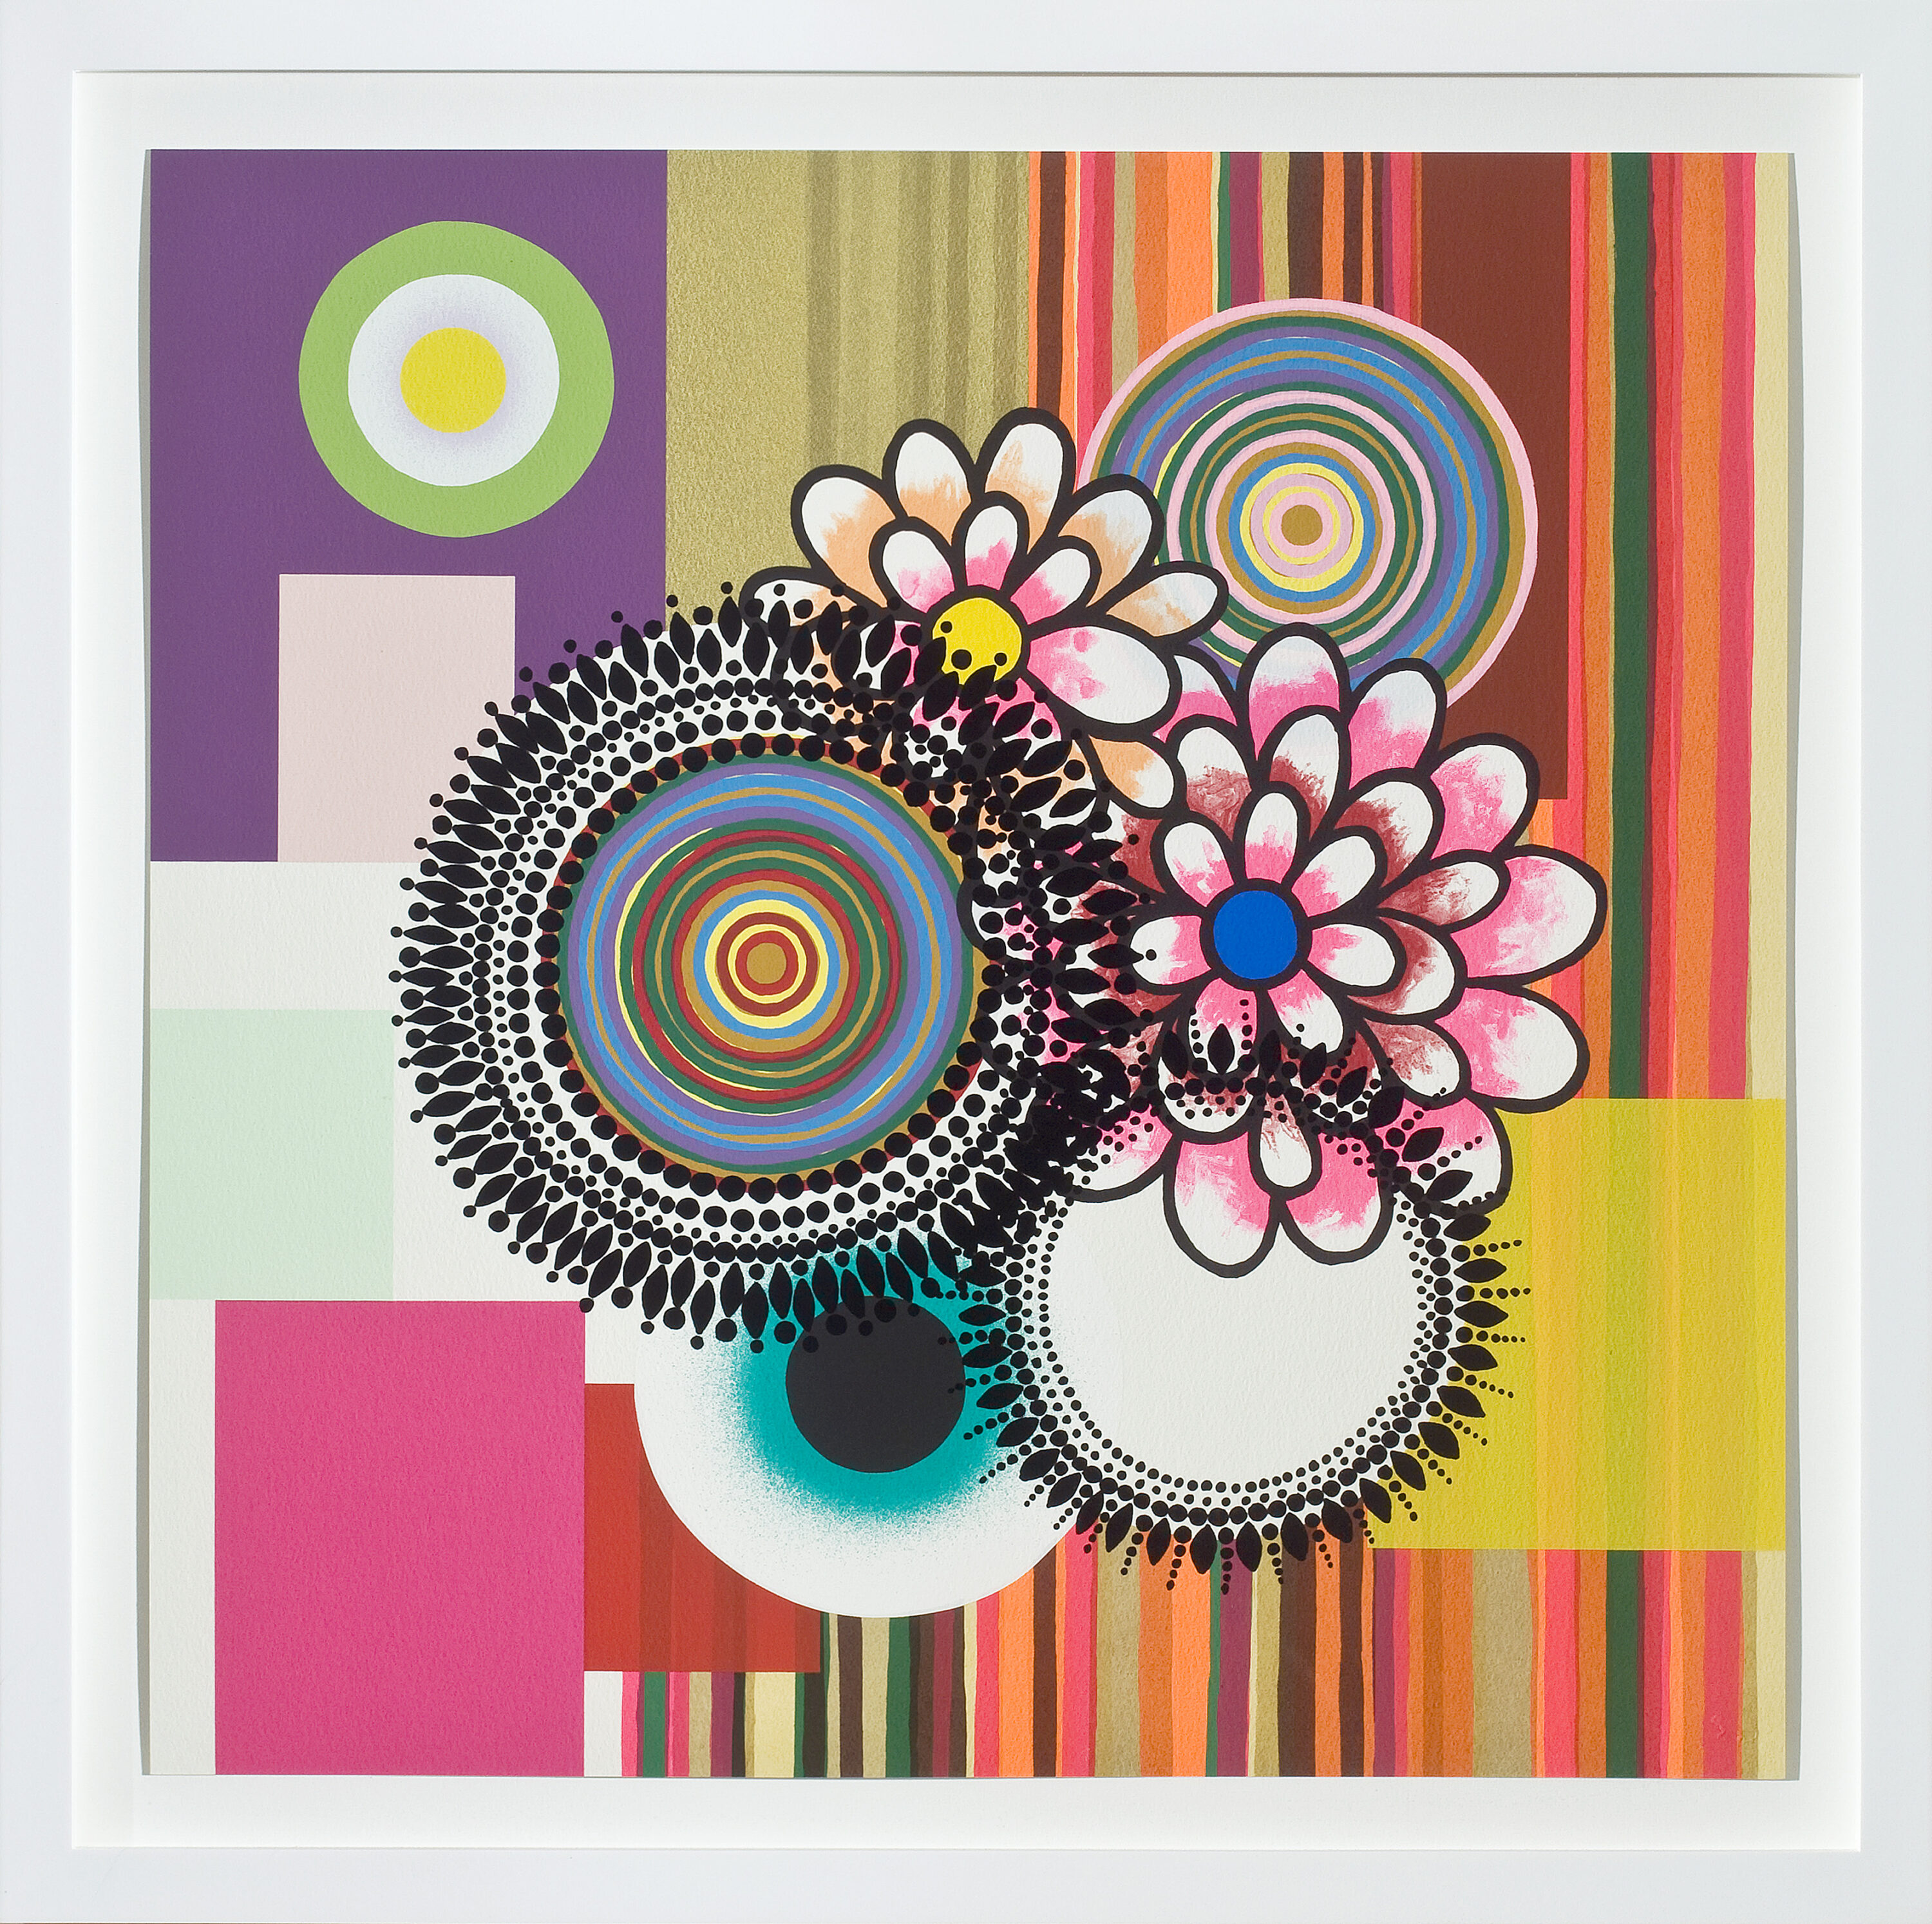 A square, vibrant print with colorful pink flowers and colorful, mandala-like circles against a geometric background of different colored rectangles and vertical stripes.